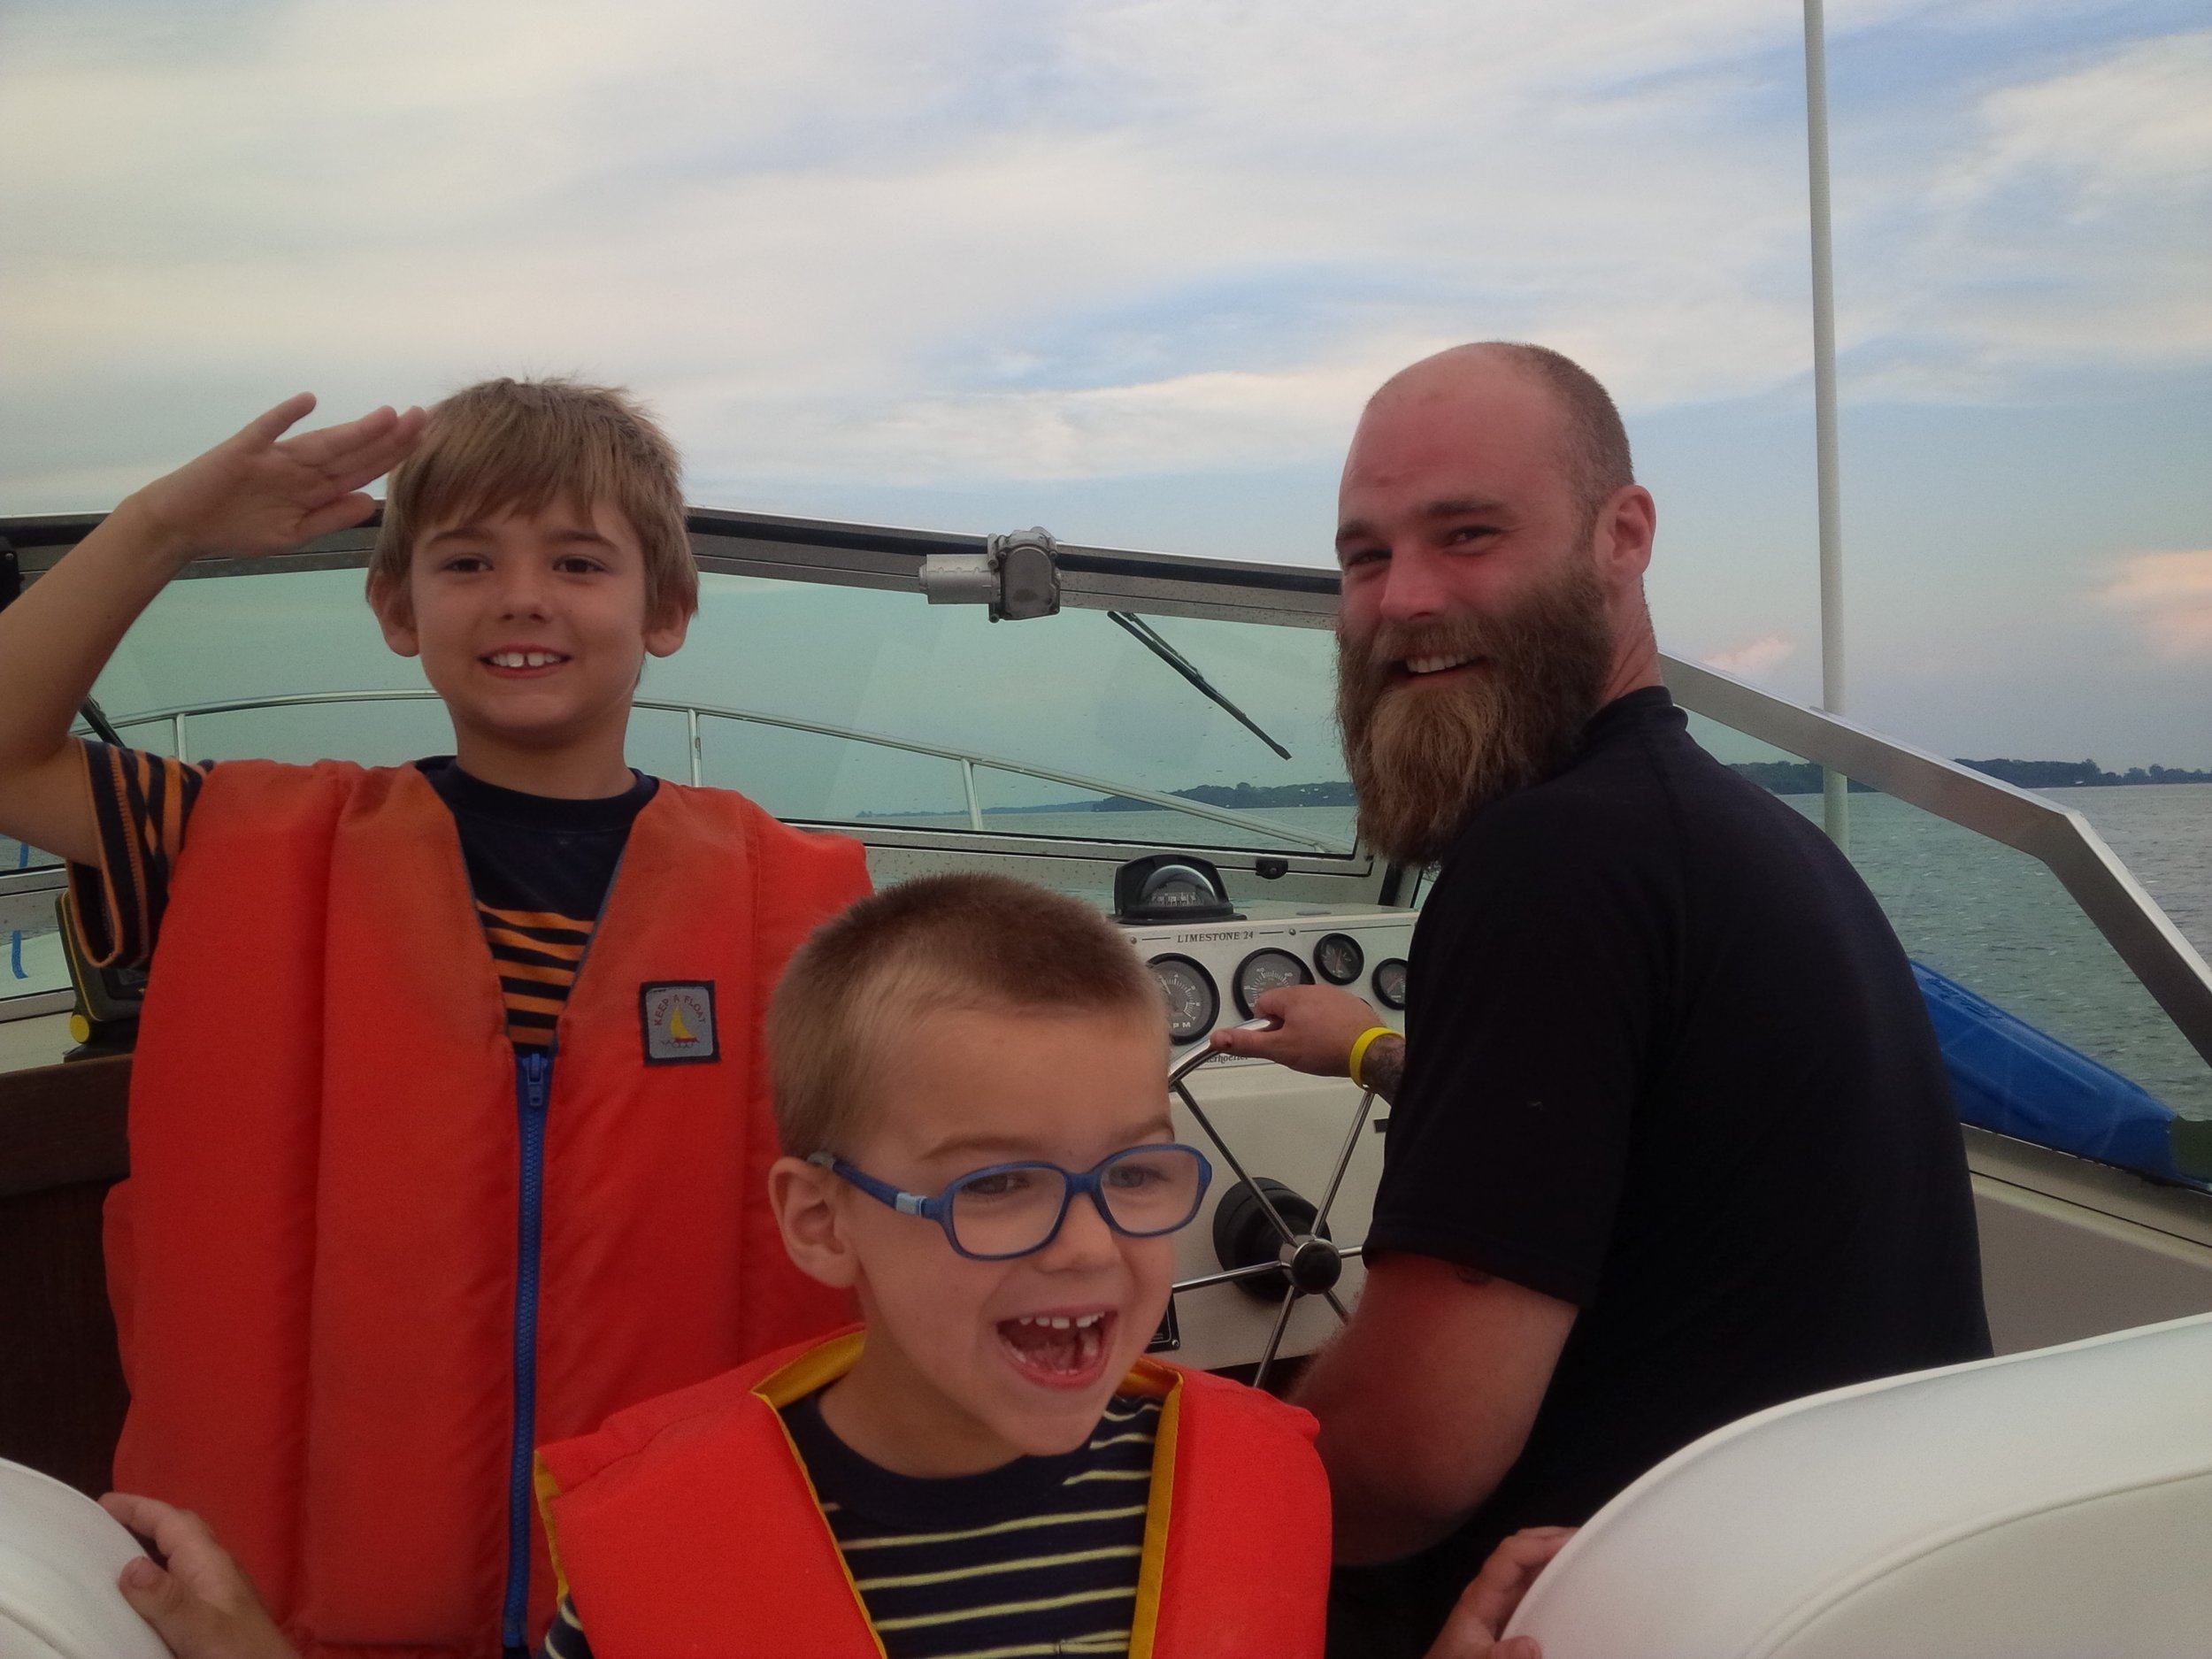 son matt and grandsons cole (saluting) and jeremy